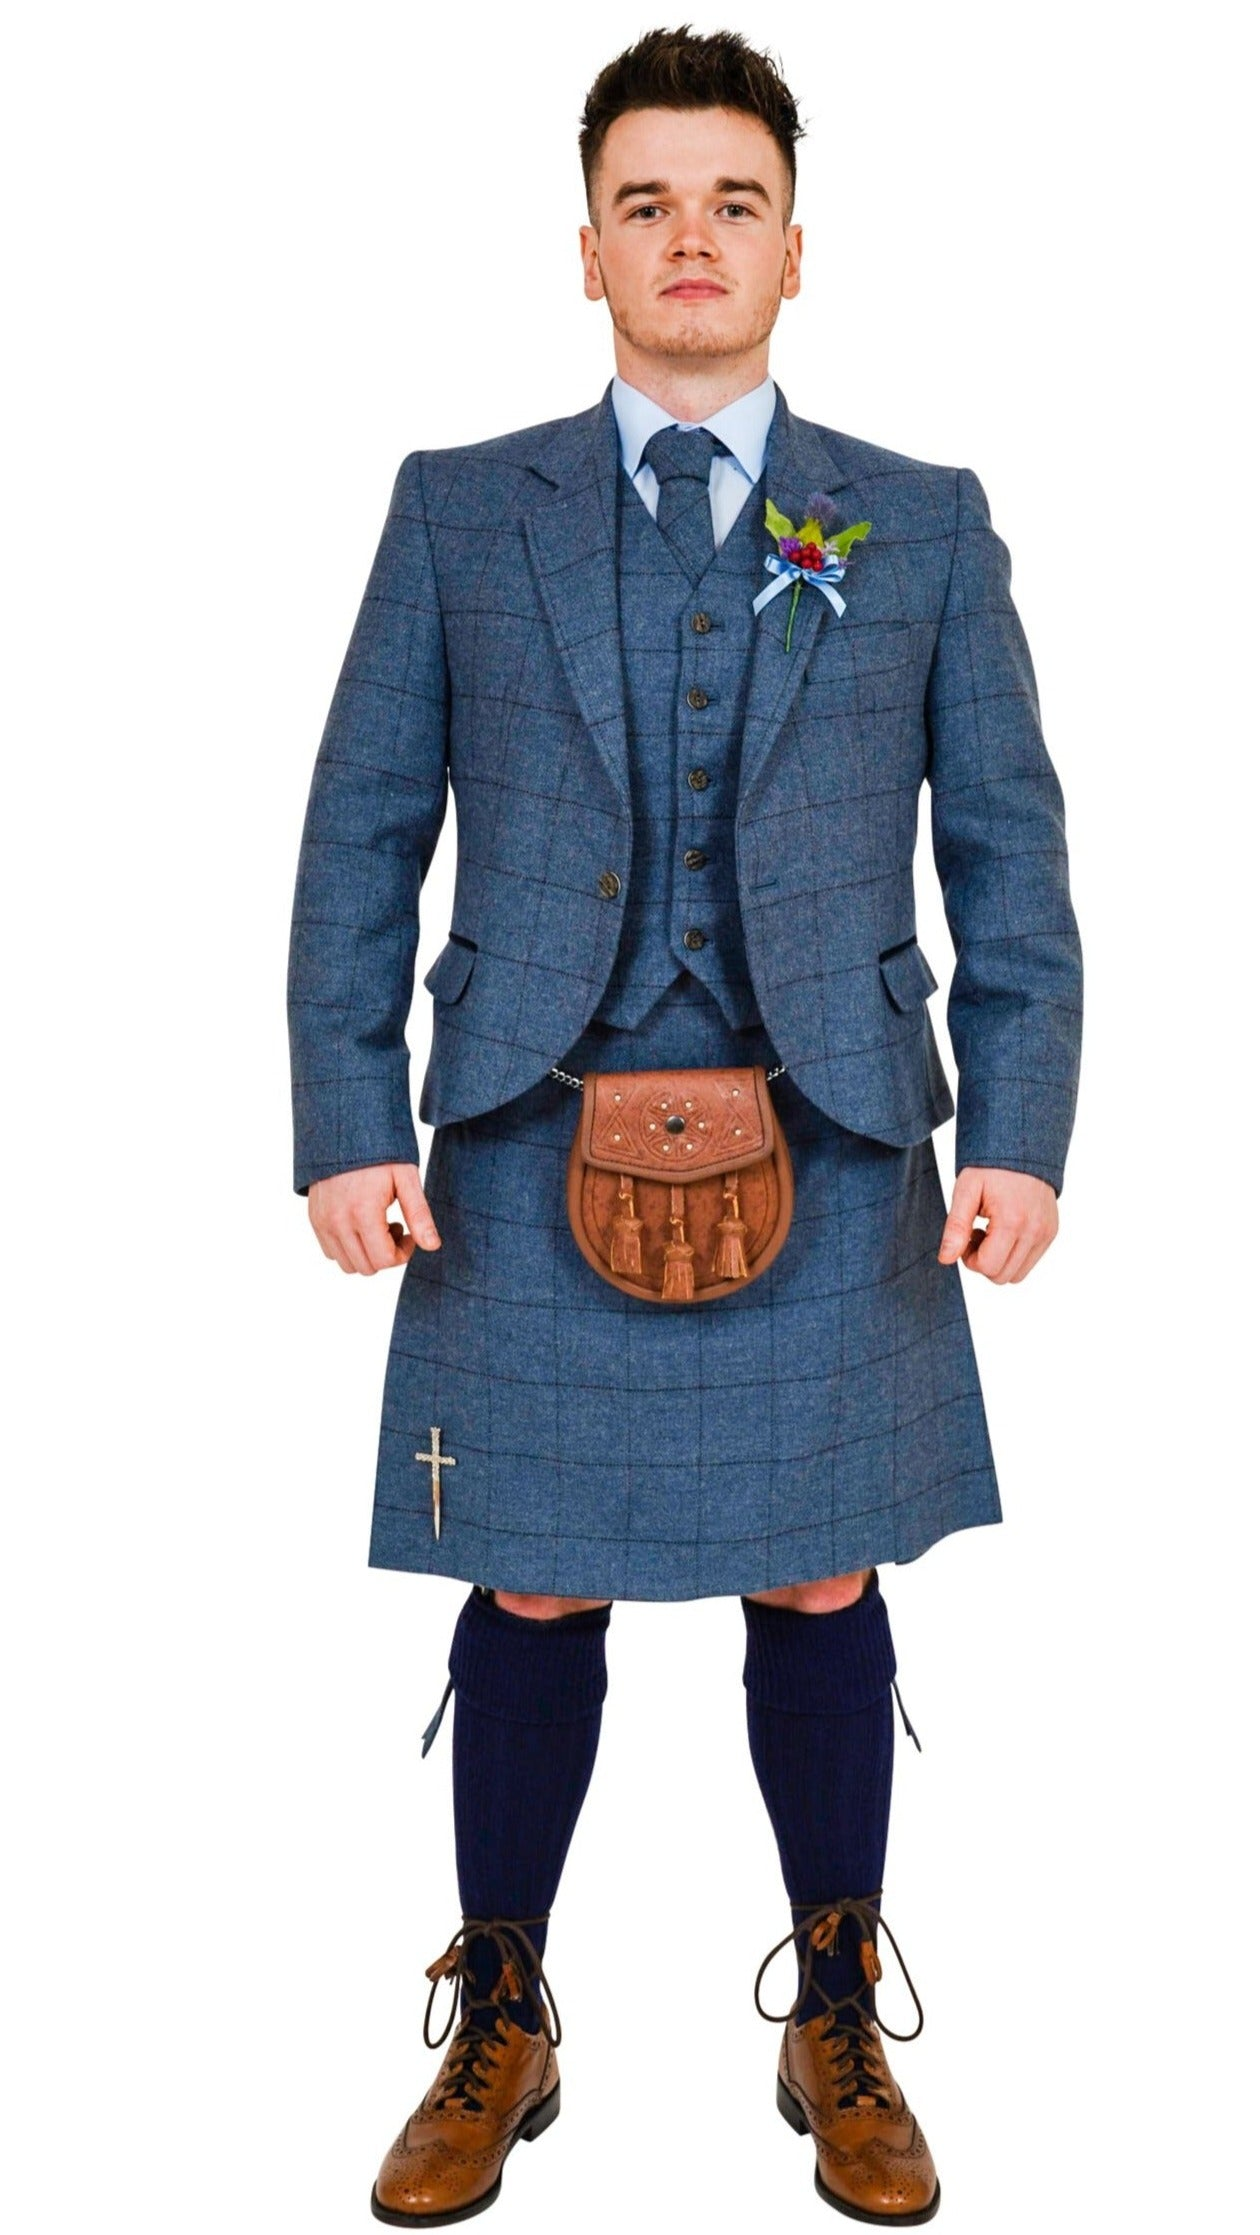 Cairngorm Blue tweed kilt hire outfit  from Anderson Kilts Dumfries image 1